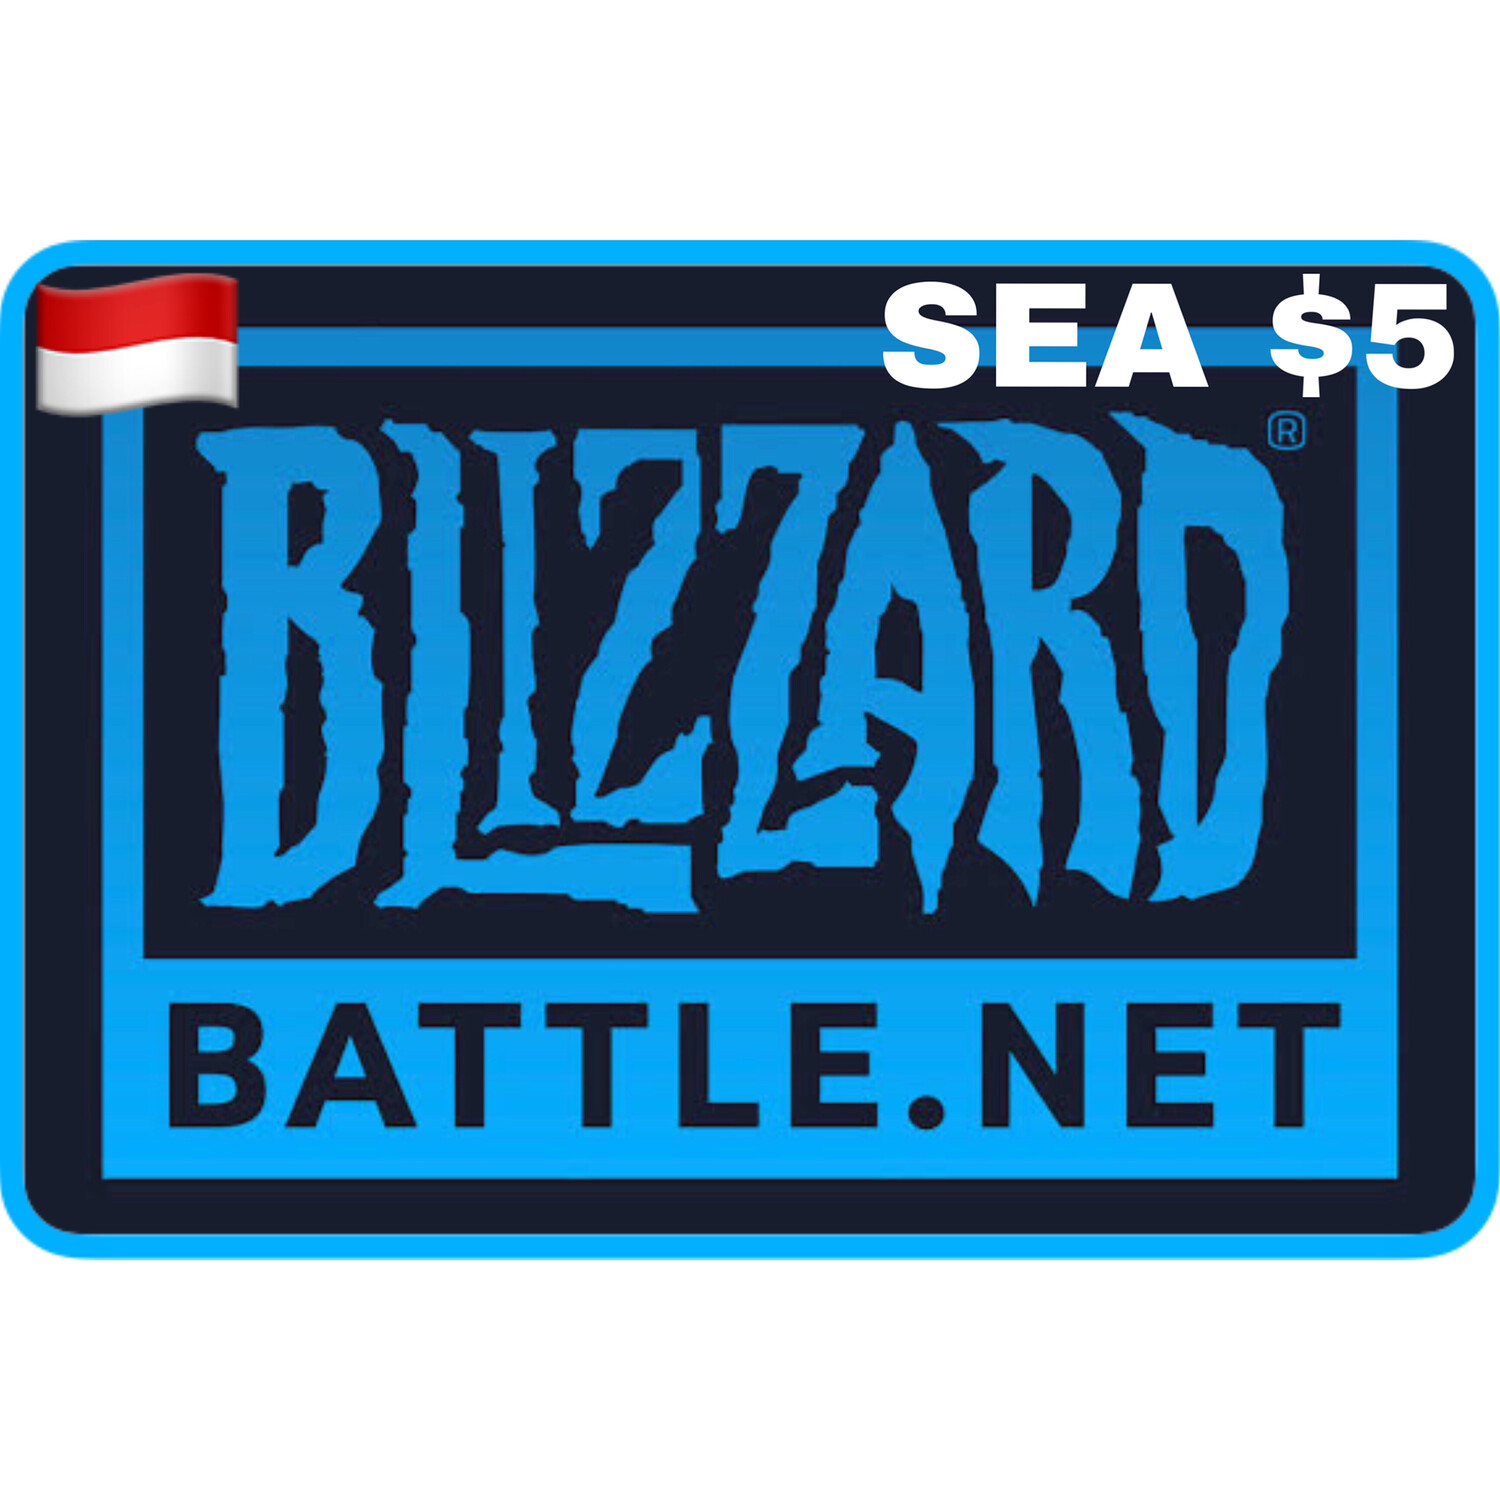 Battle.net Gift Card SEA $5 Blizzard Balance Code